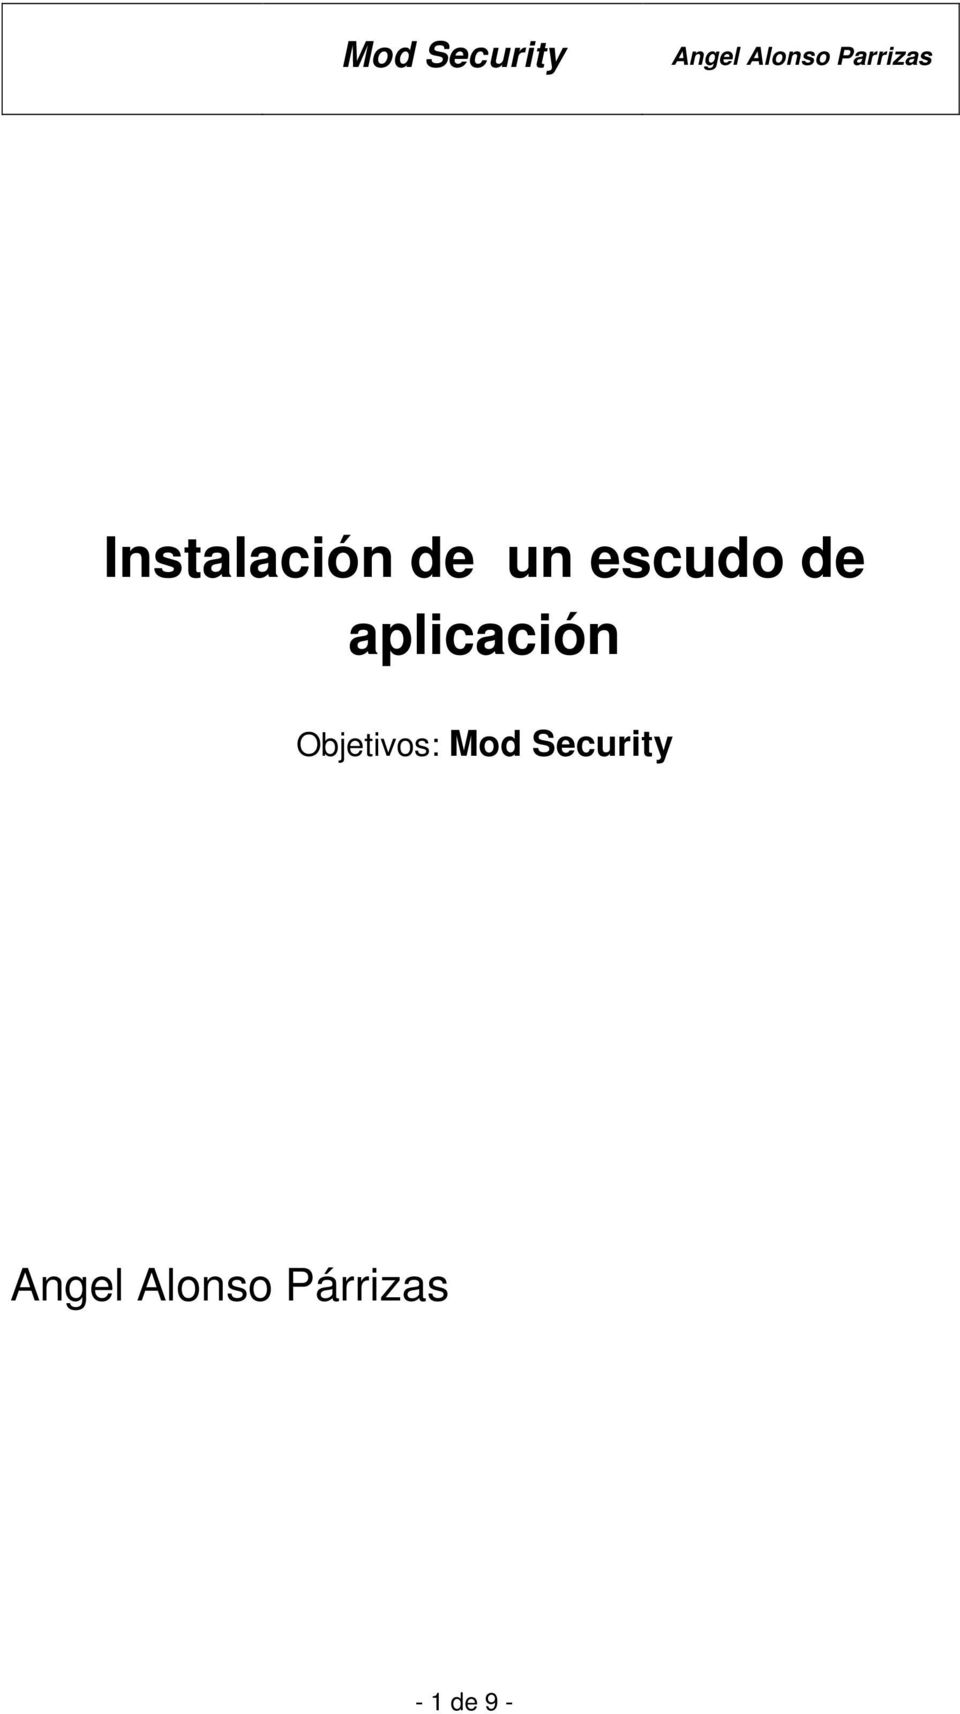 Objetivos: Mod Security